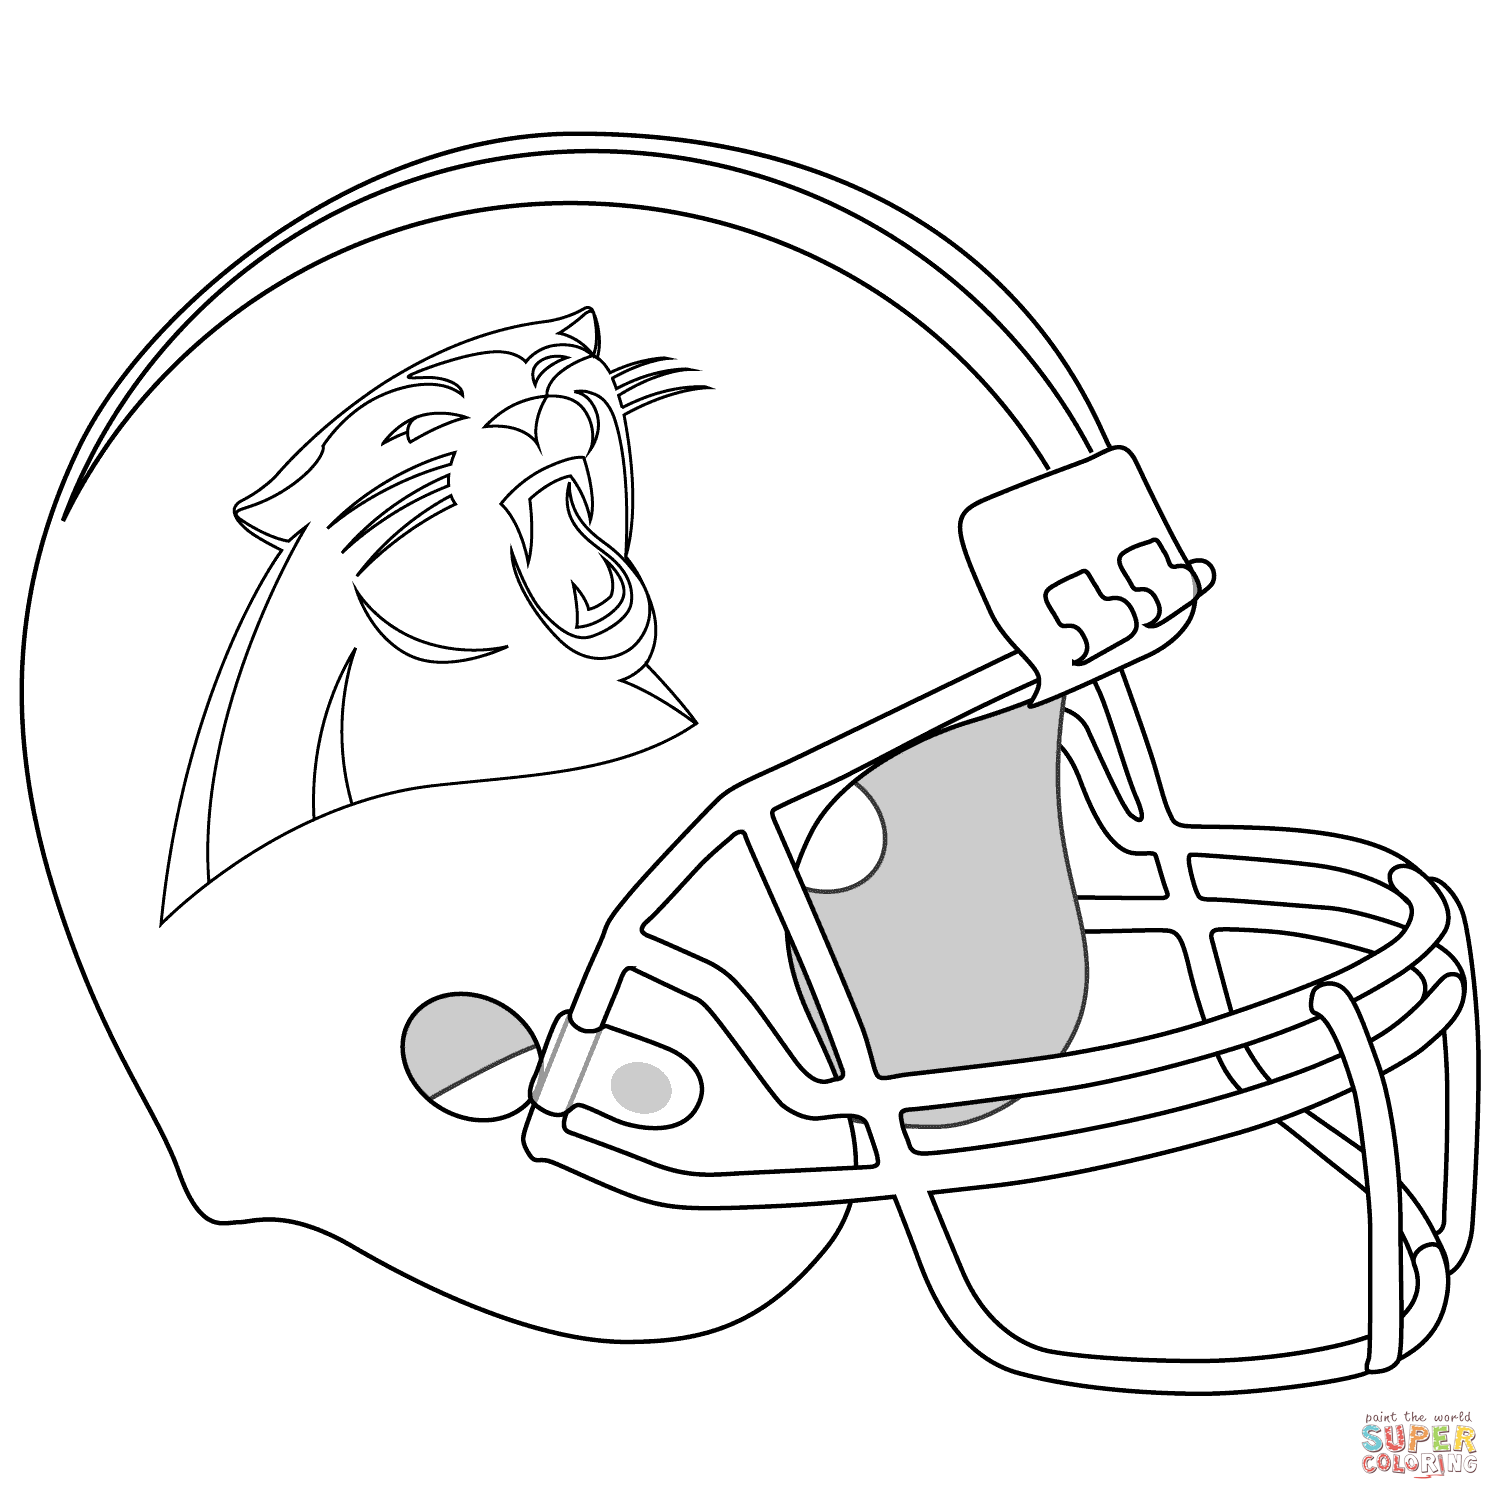 panthers football coloring pages panther football coloring logo coloring coloring pages